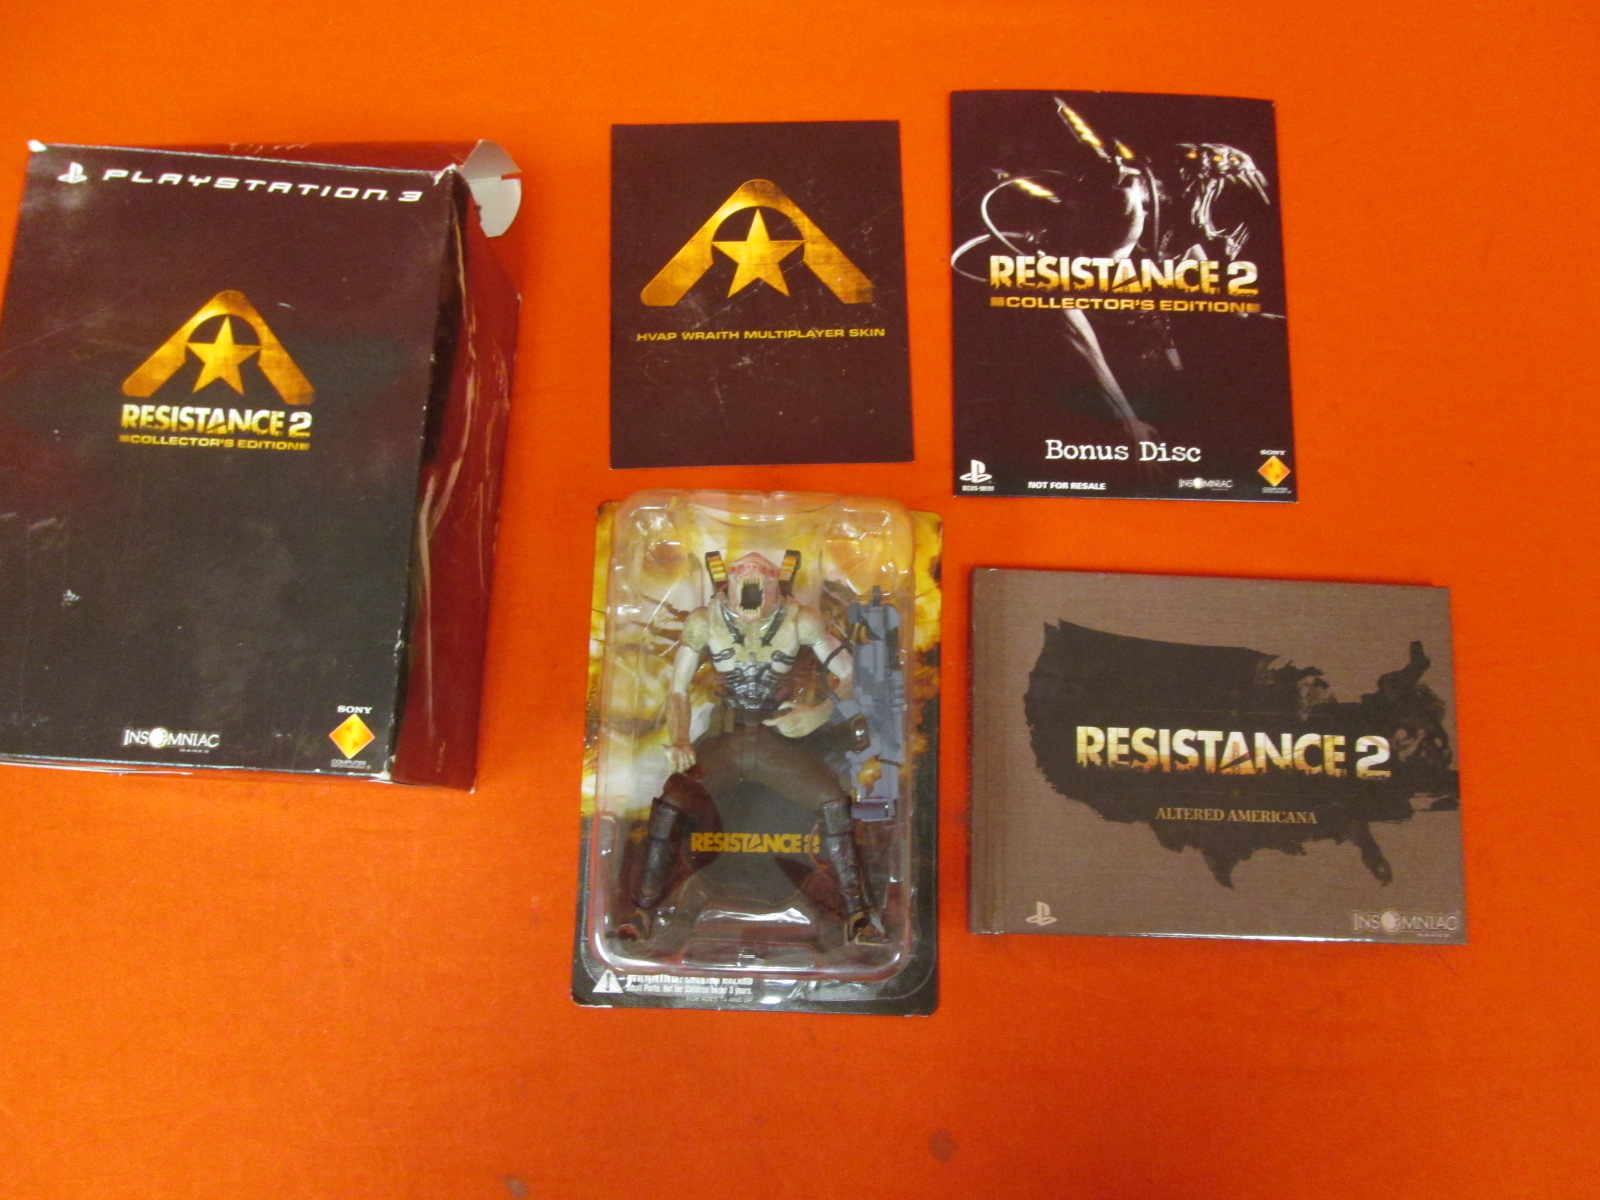 Box Accessories For Resistance 2 Edition For PlayStation 3